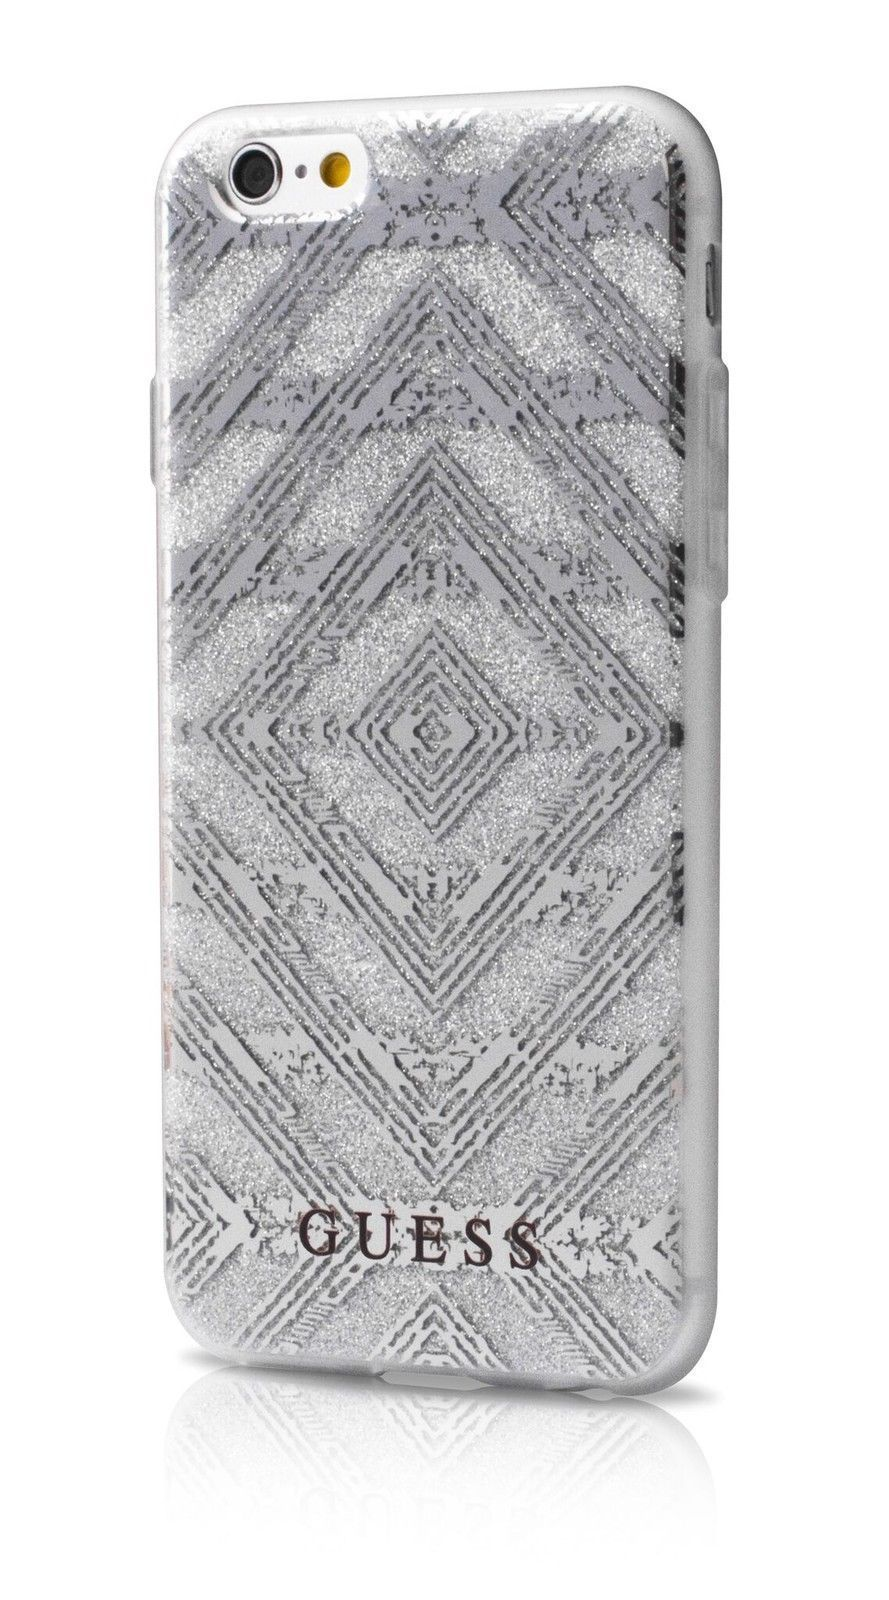 ac3f9ff8360 Guess Aztec Gel Case for iPhone 7 Plus - Silver Sand Glitter Pattern 3D  Effect, Style Stuff we Love